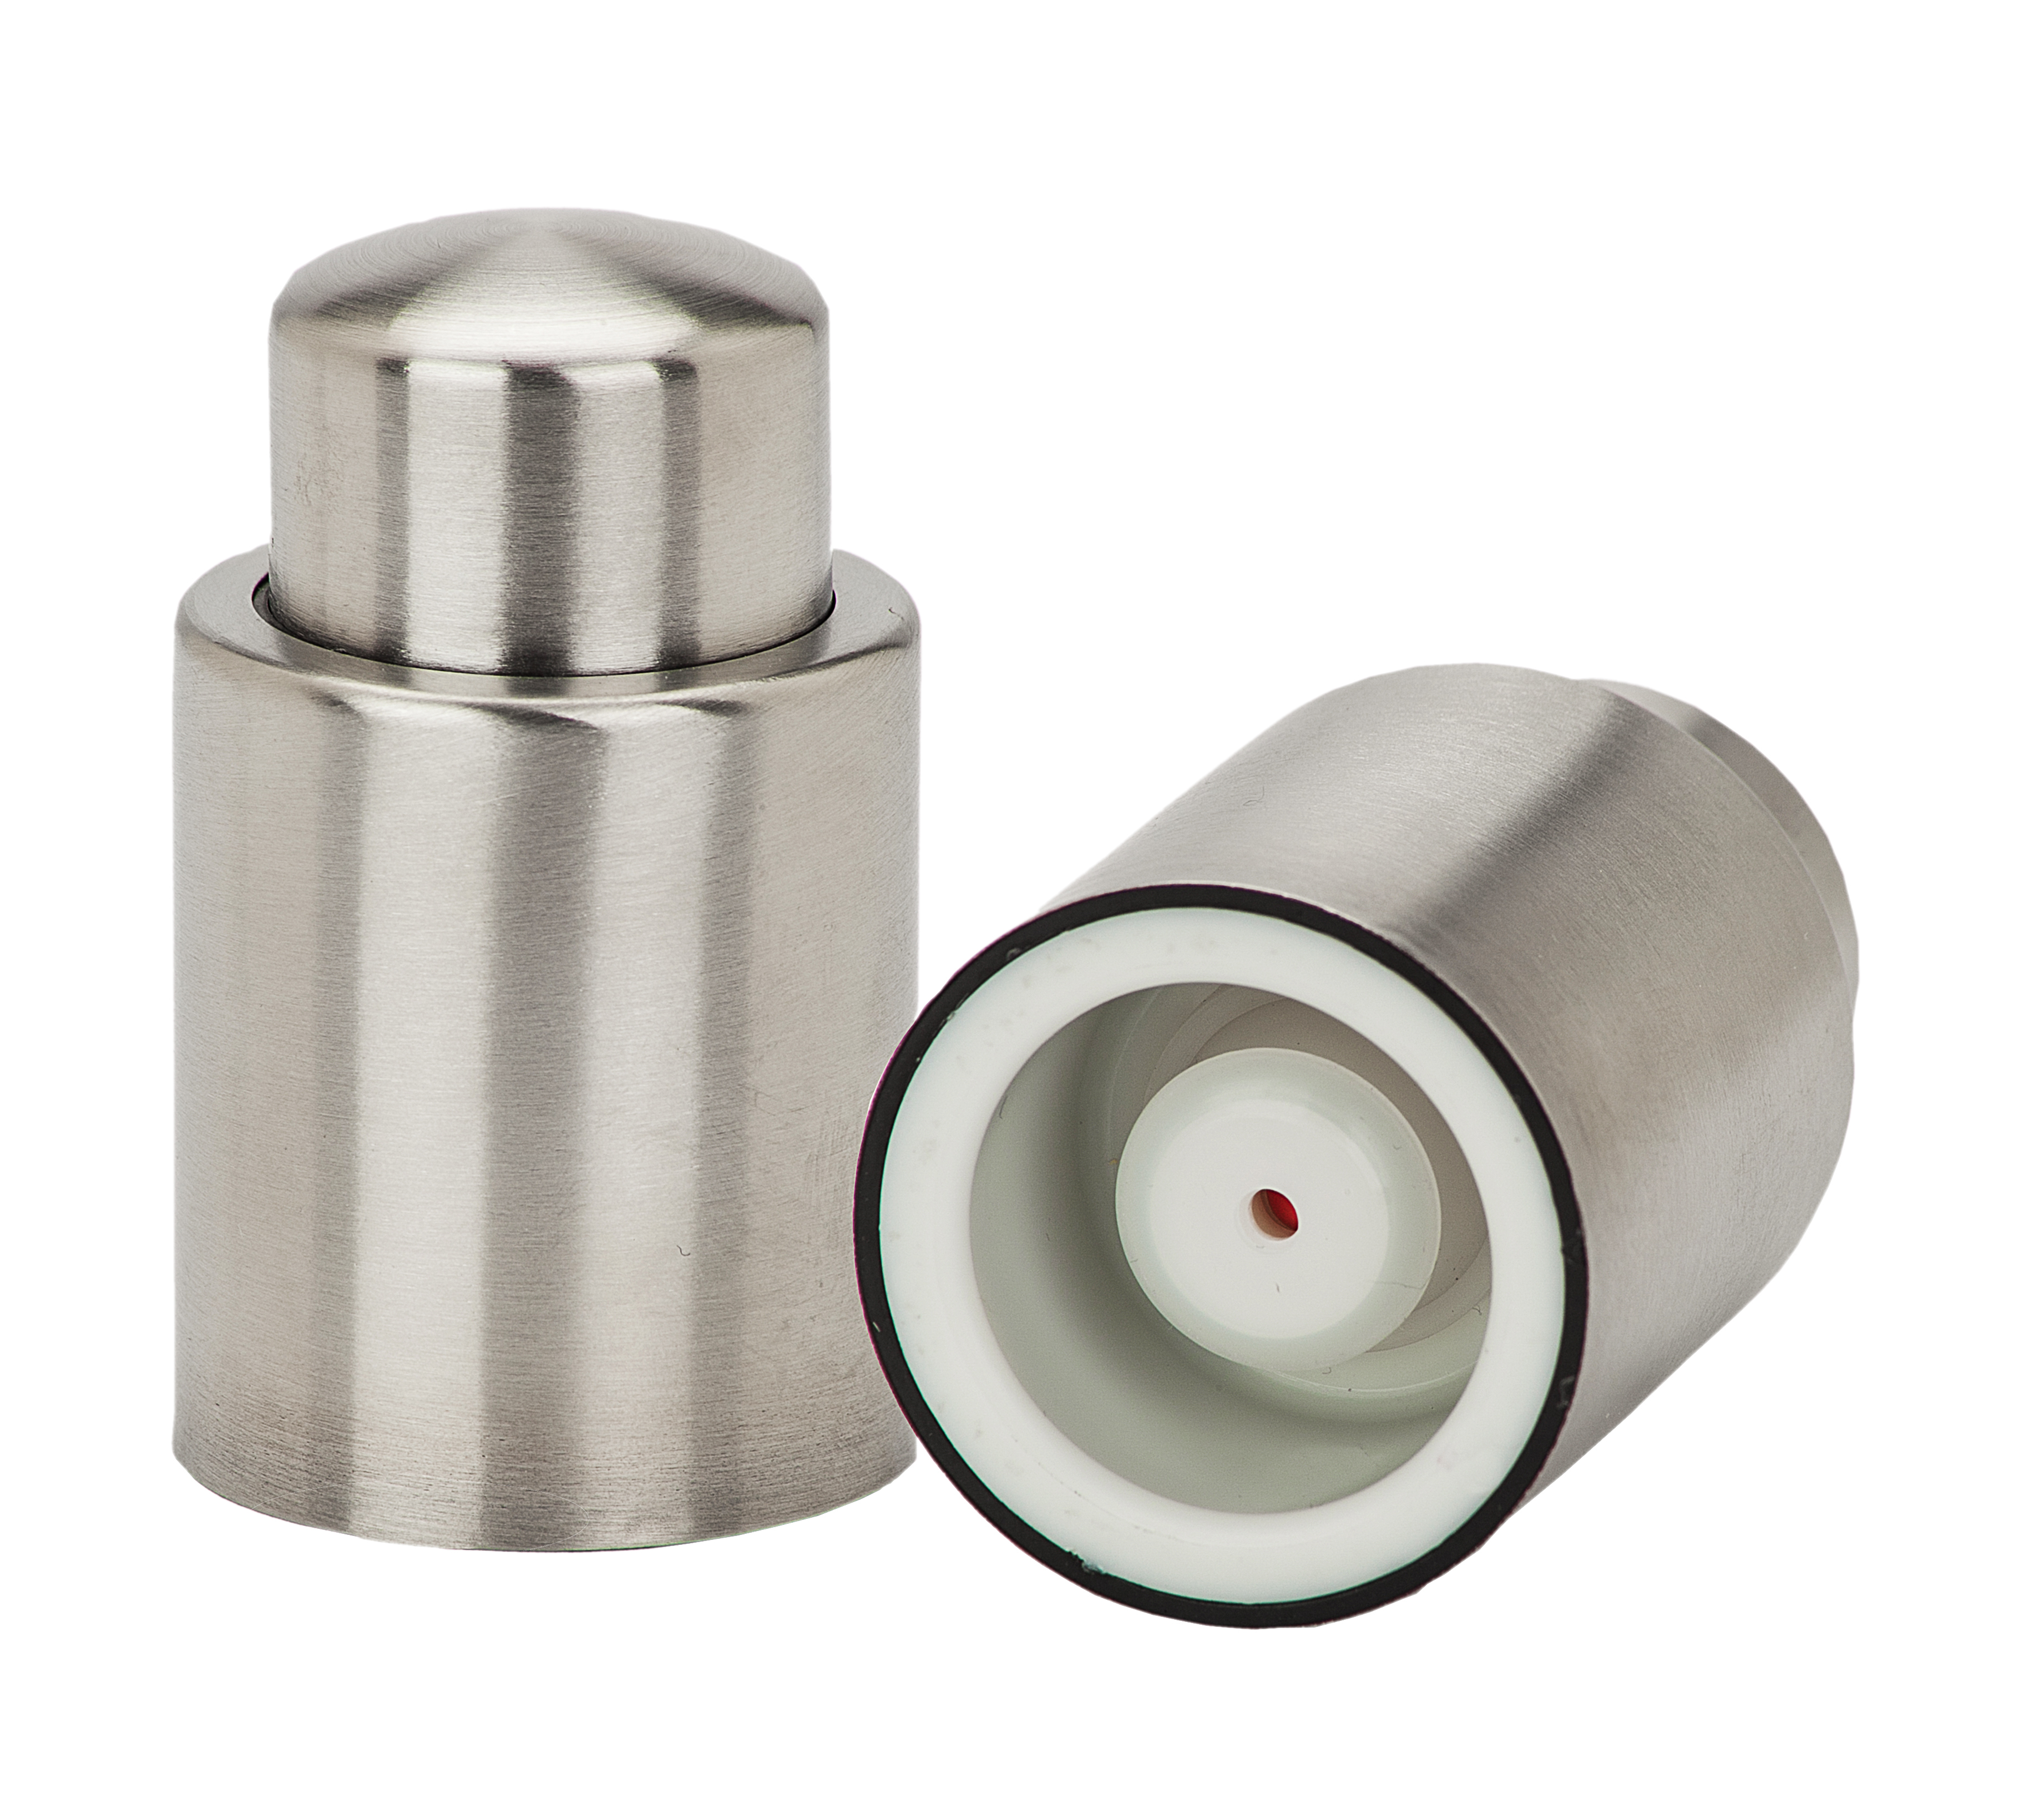 Stainless Steel Vacuum Wine Stopper and Sealer 5716525d693d6f25158b457c